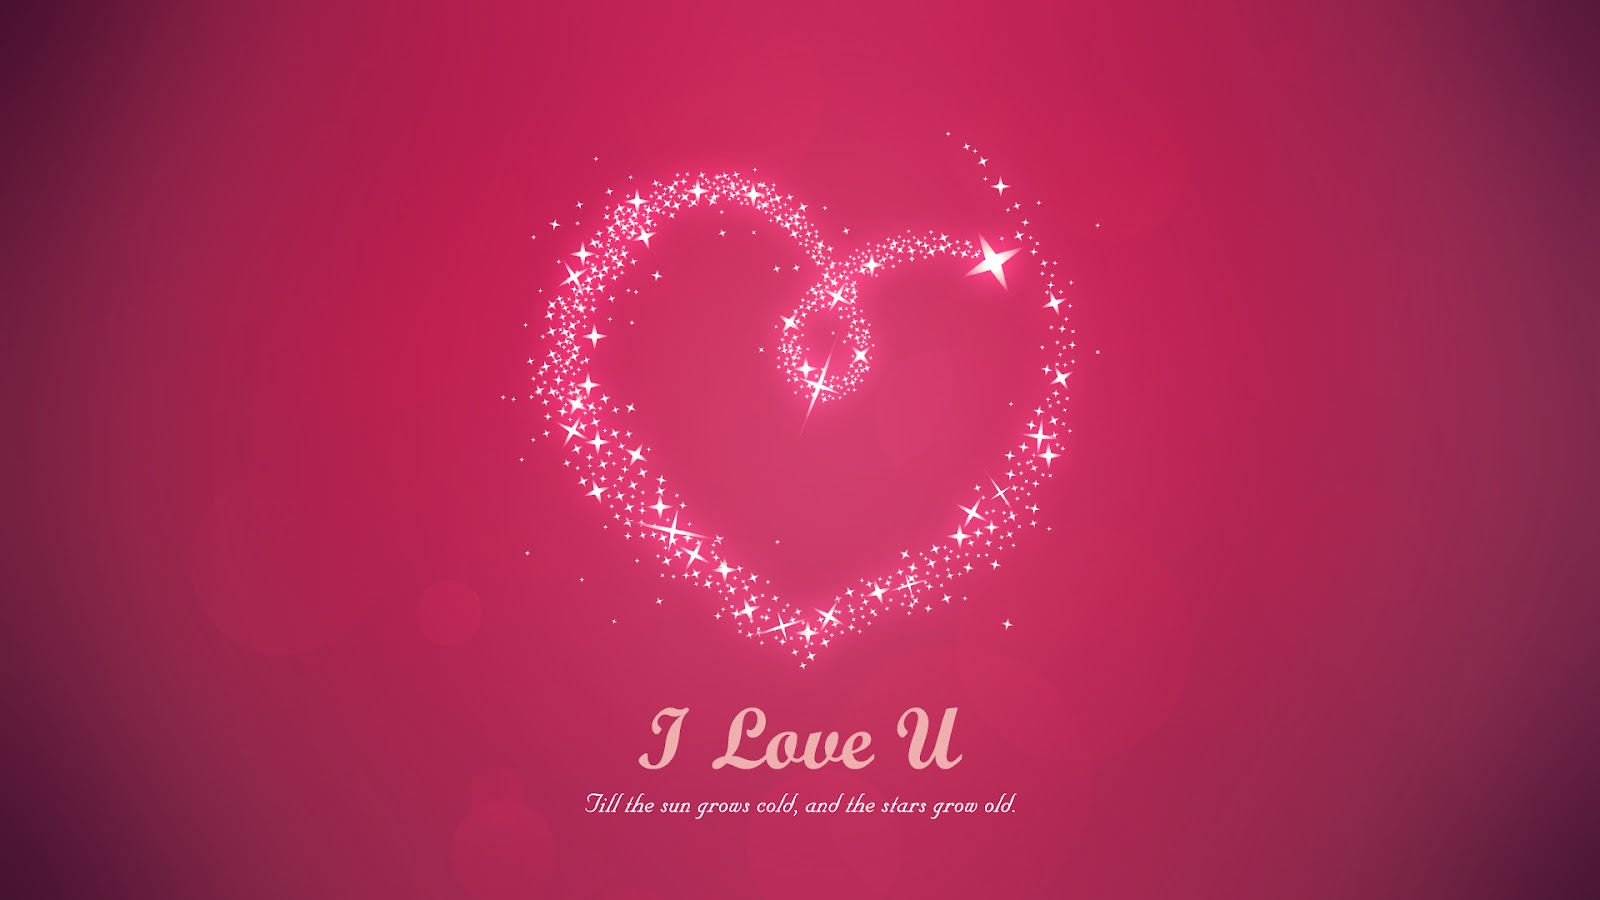 Love Wallpapers Sad : i love u wallpapers love wallpapers love quotes ...